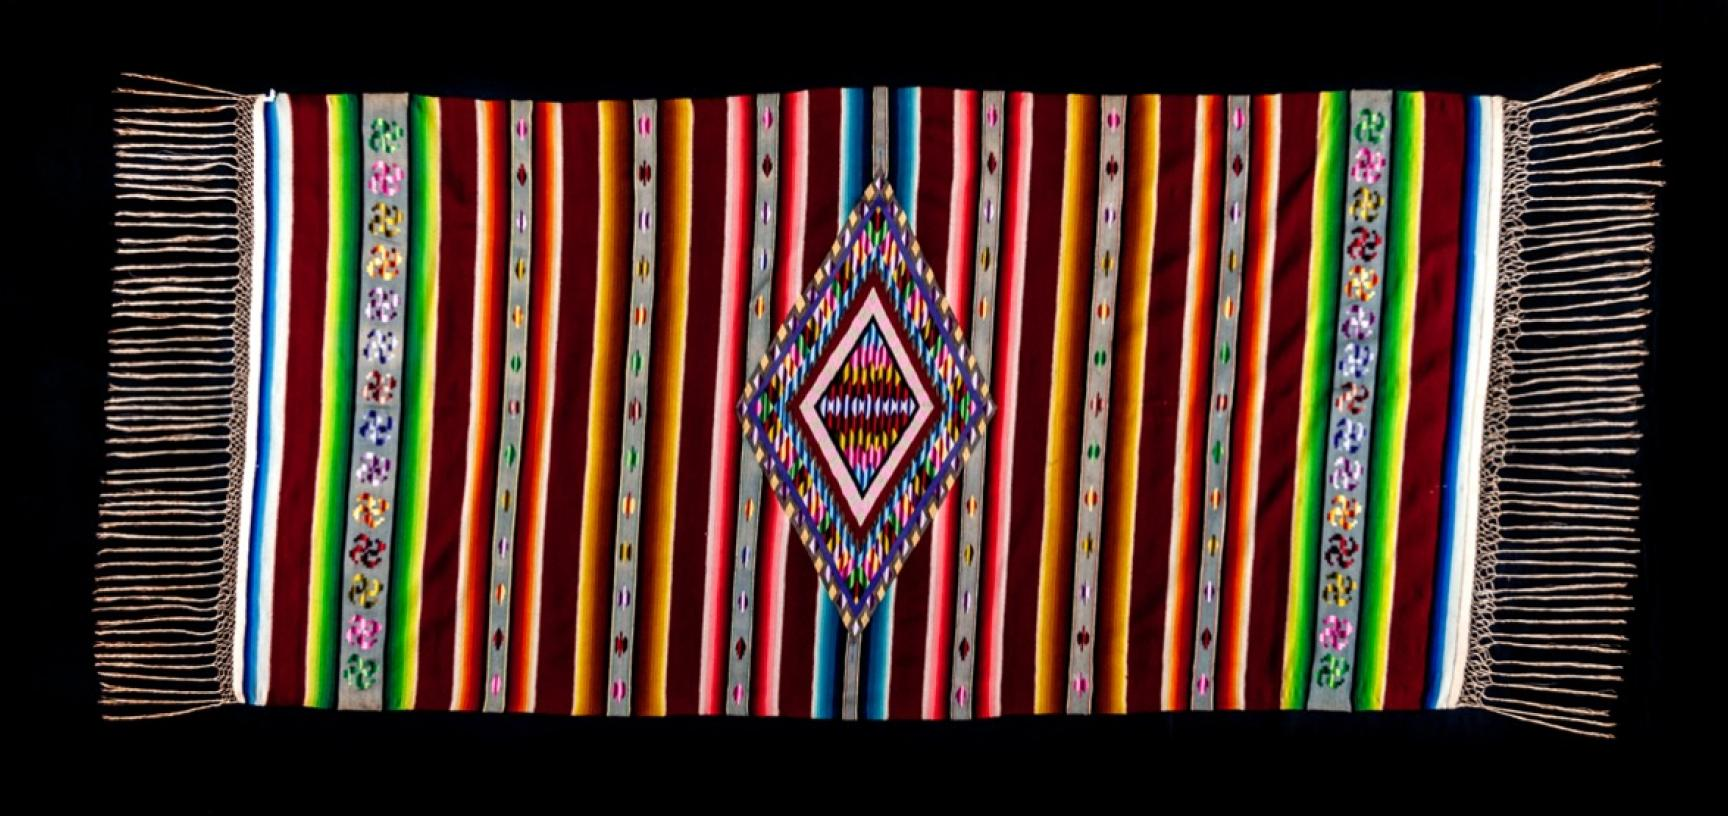 Shawl (saltillo serape), made in the early nineteenth century. Aguascalientes, Mexico. The shawl is tapestry-woven with wool, silk and metallic weft on a linen warp. The gradated bands of colour have been achieved by 'ombre' dyeing, a process whereby the